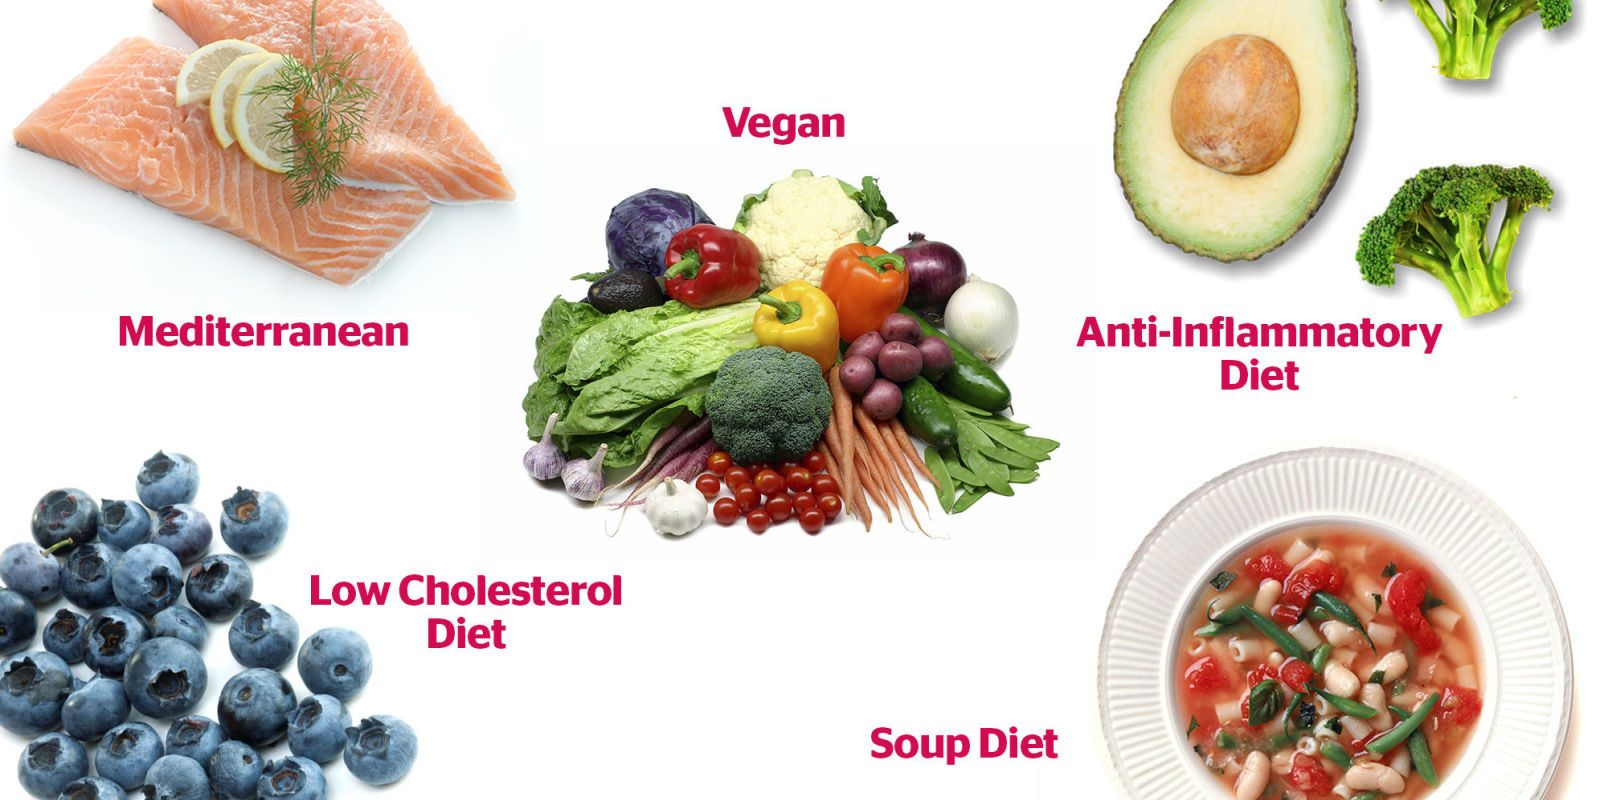 Healthy eating diet for weight loss image 5